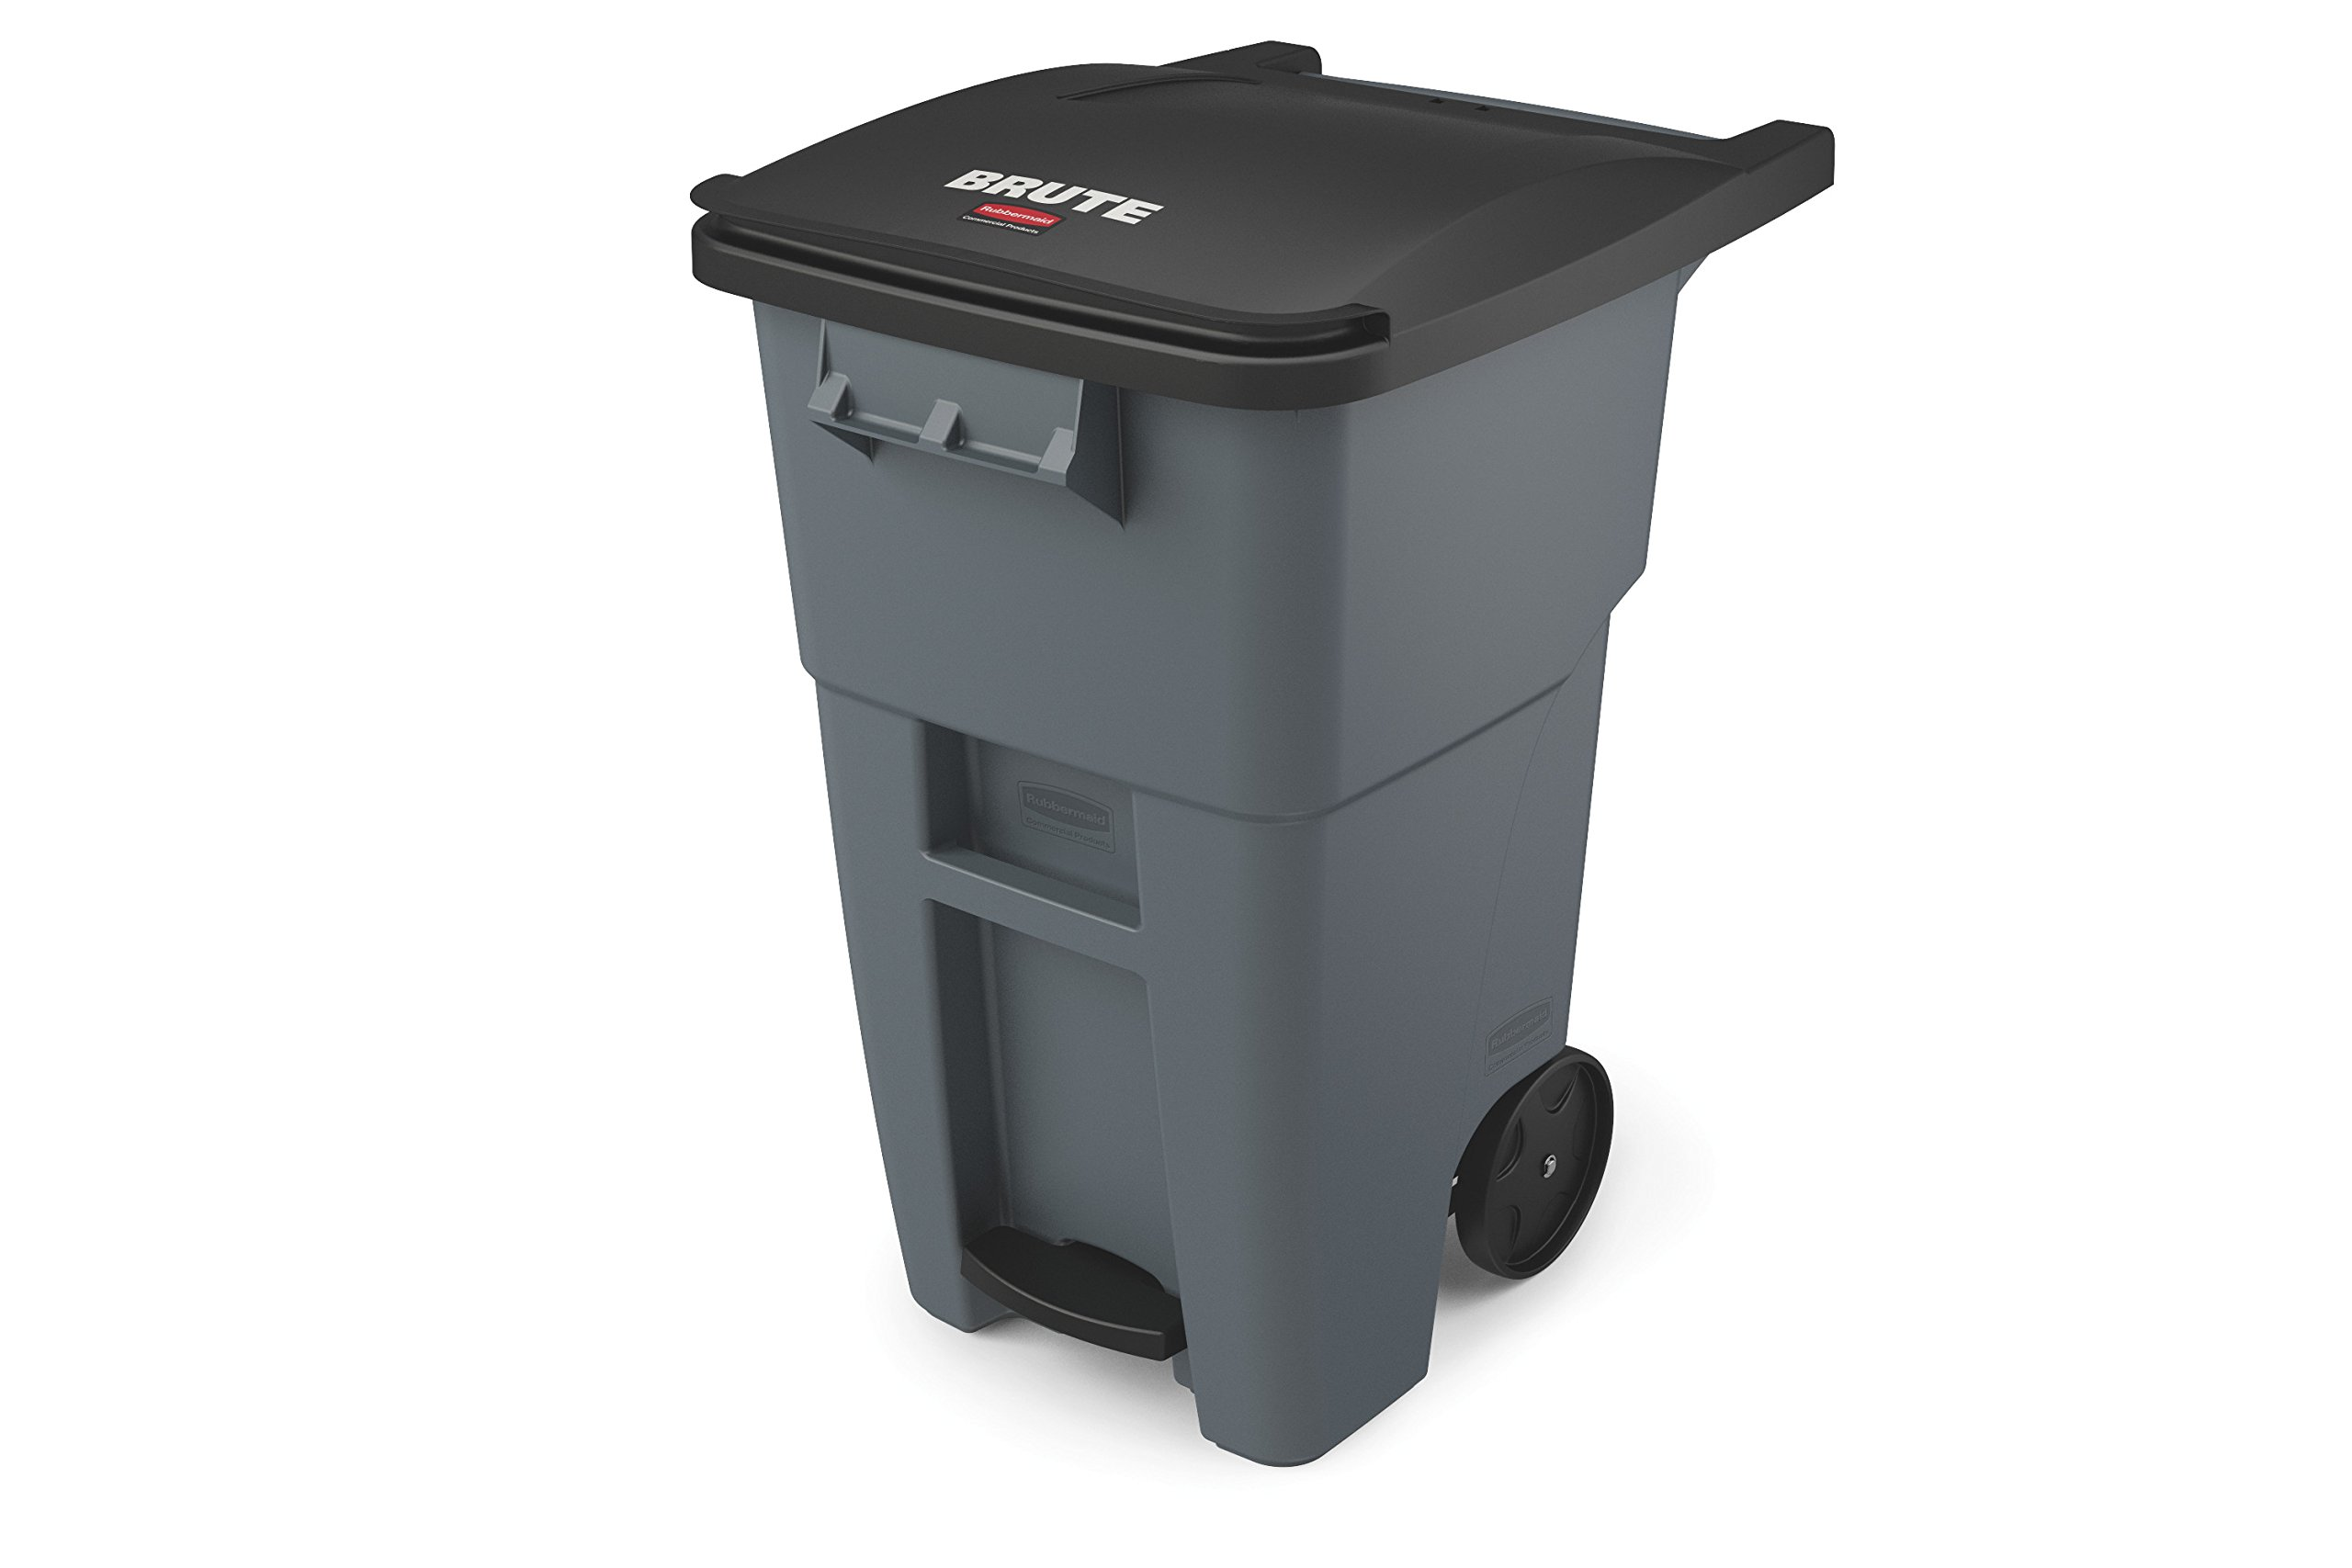 Rubbermaid Commercial 1971956 Brute Step-On Rollout Trash Can, 50 gal/189 L, 39.578'' Height, 24.000'' Width, Gray